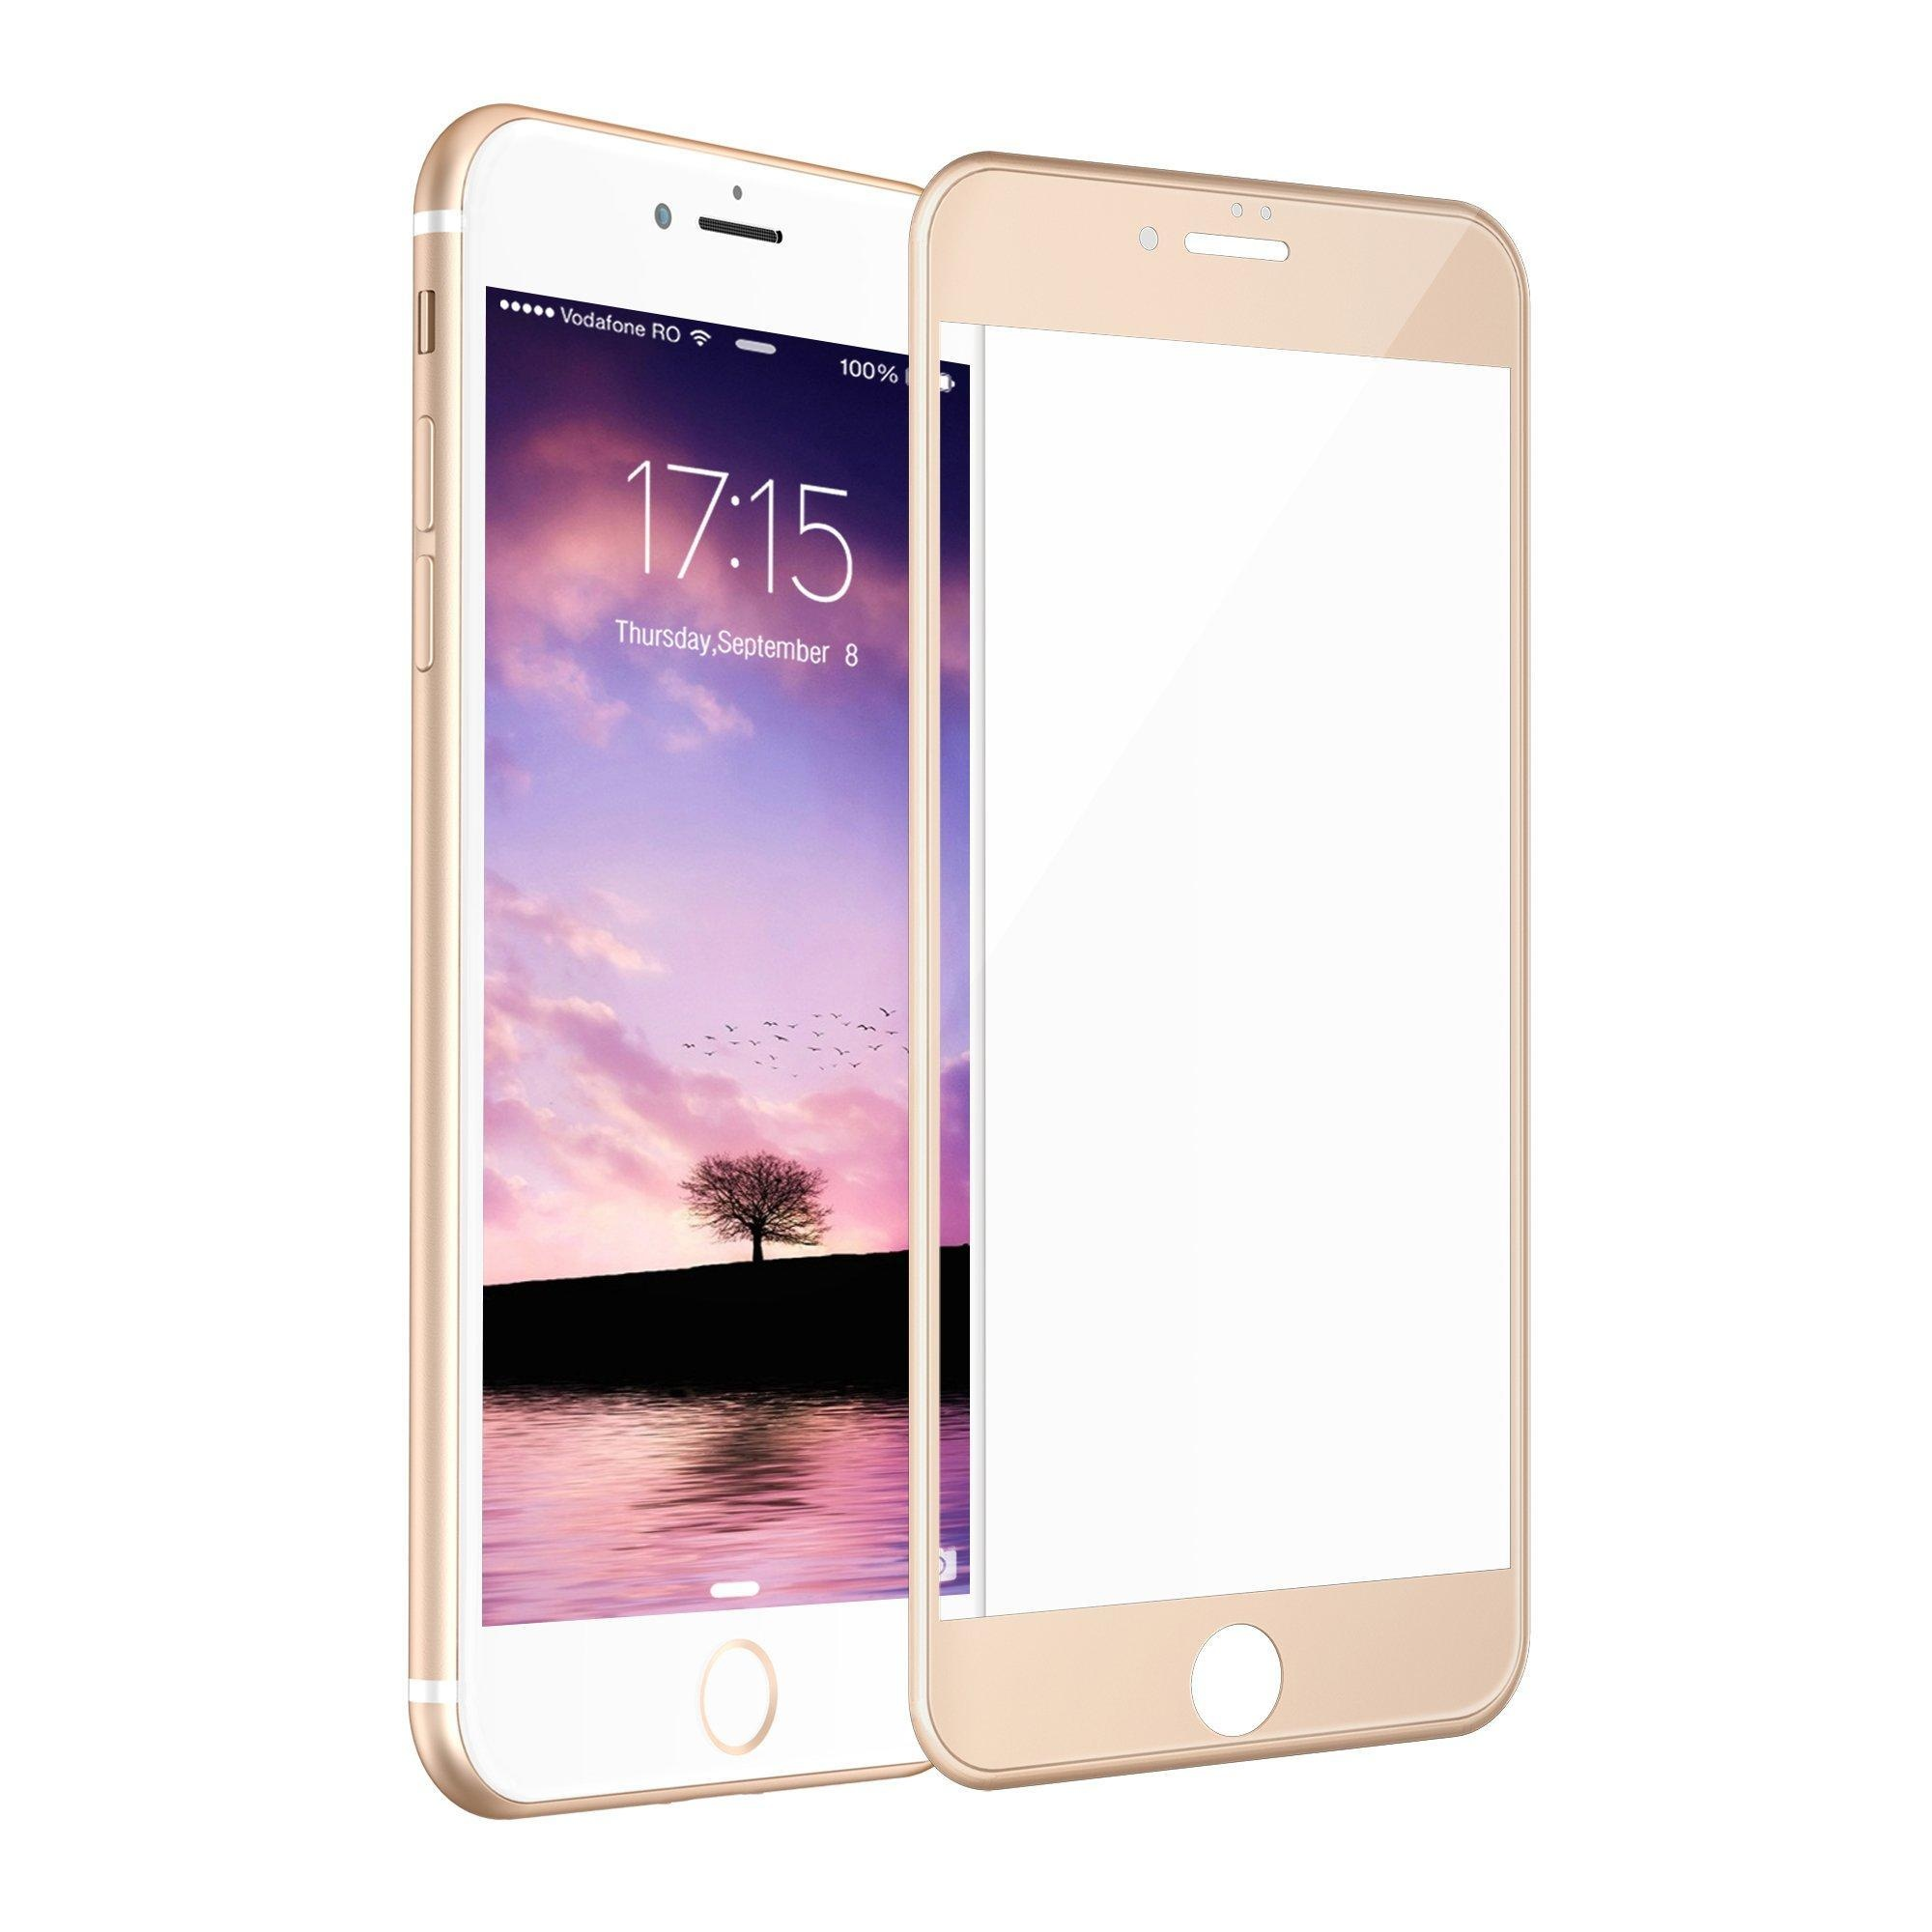 the latest 56648 19b0b Full Coverage Gold Tempered Glass Screen Protectector for iPhone 7